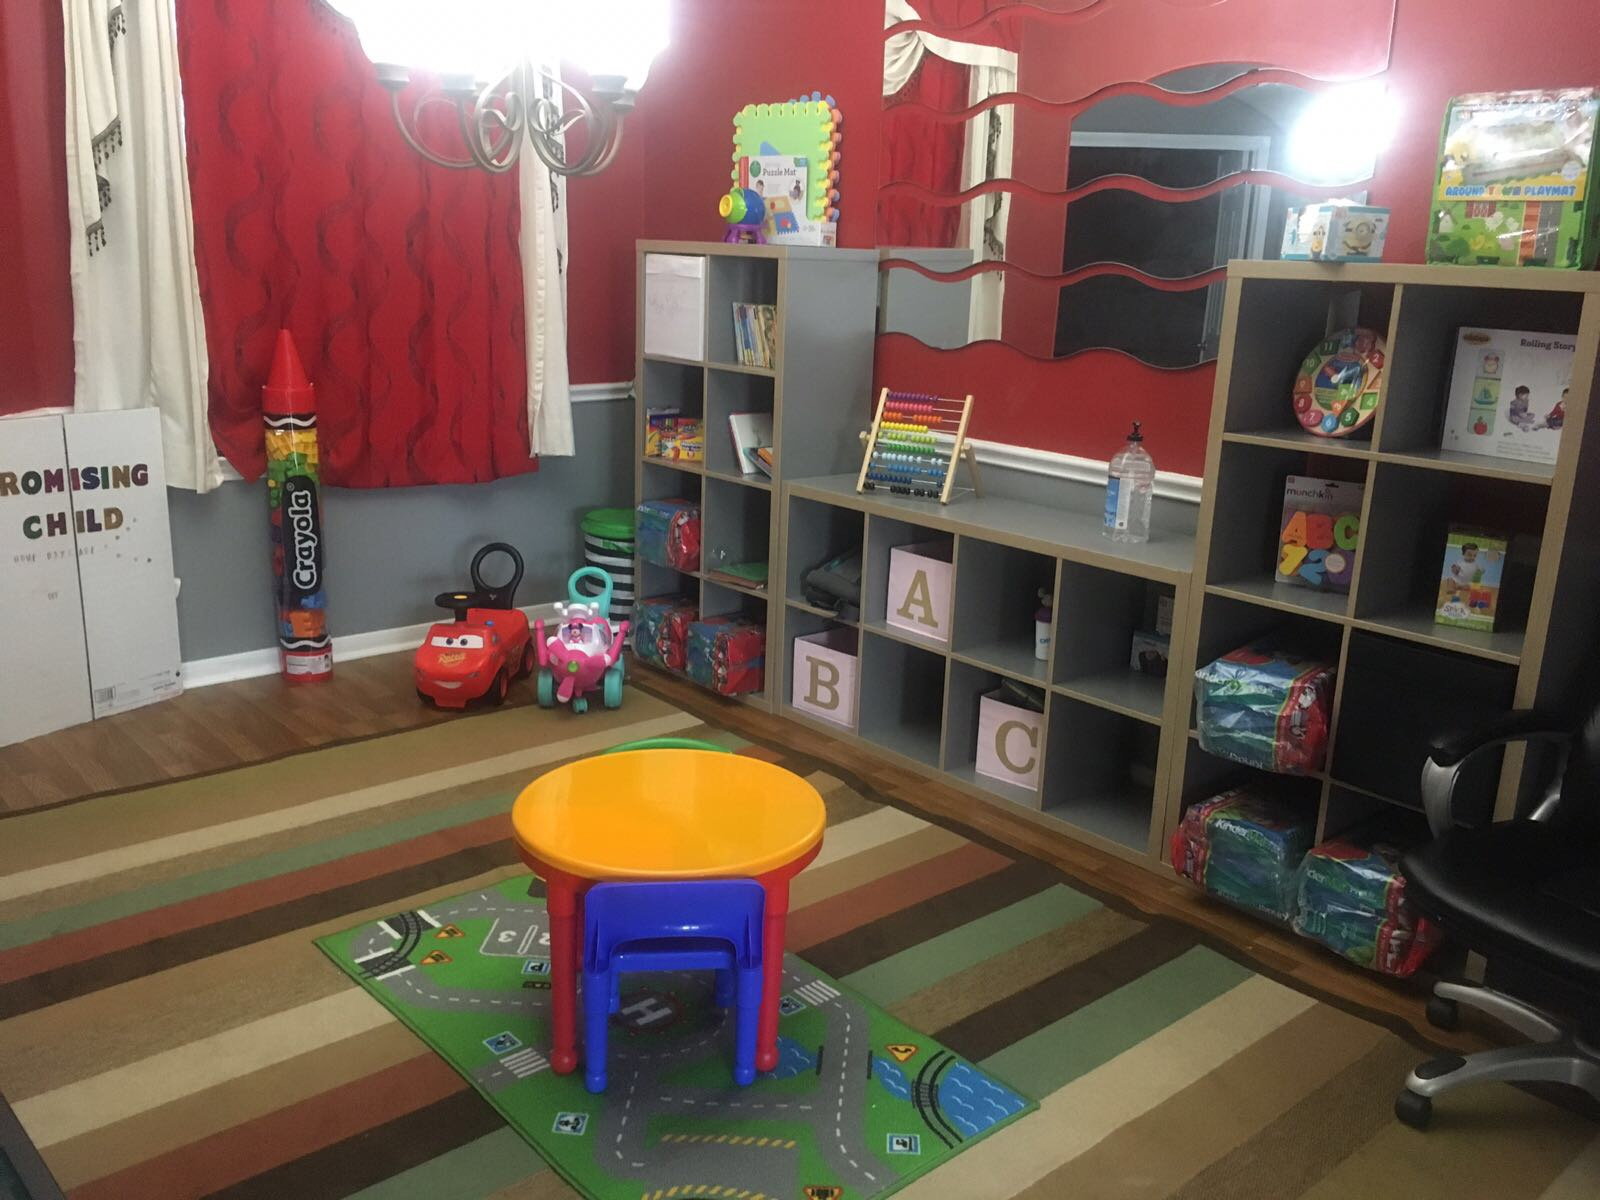 Promising Child Home Day Care